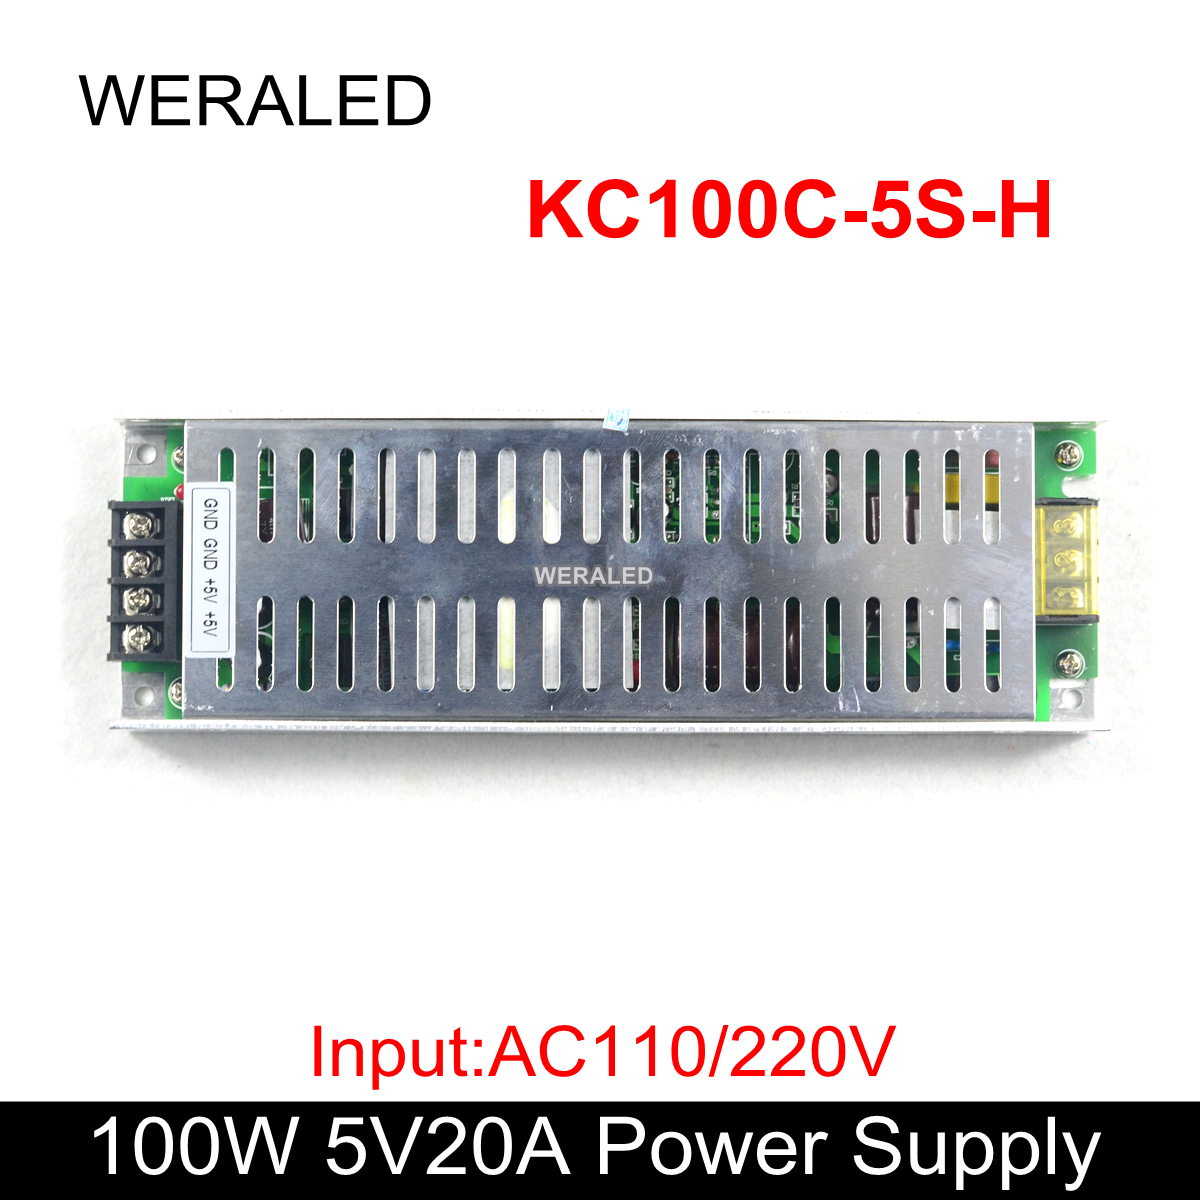 Factory Price 5V 20A 1000W LED Car Display Power Supply Input AC110V/220V , Work for P4.75/P4/P5/P7.62/P10 LED Display Panel